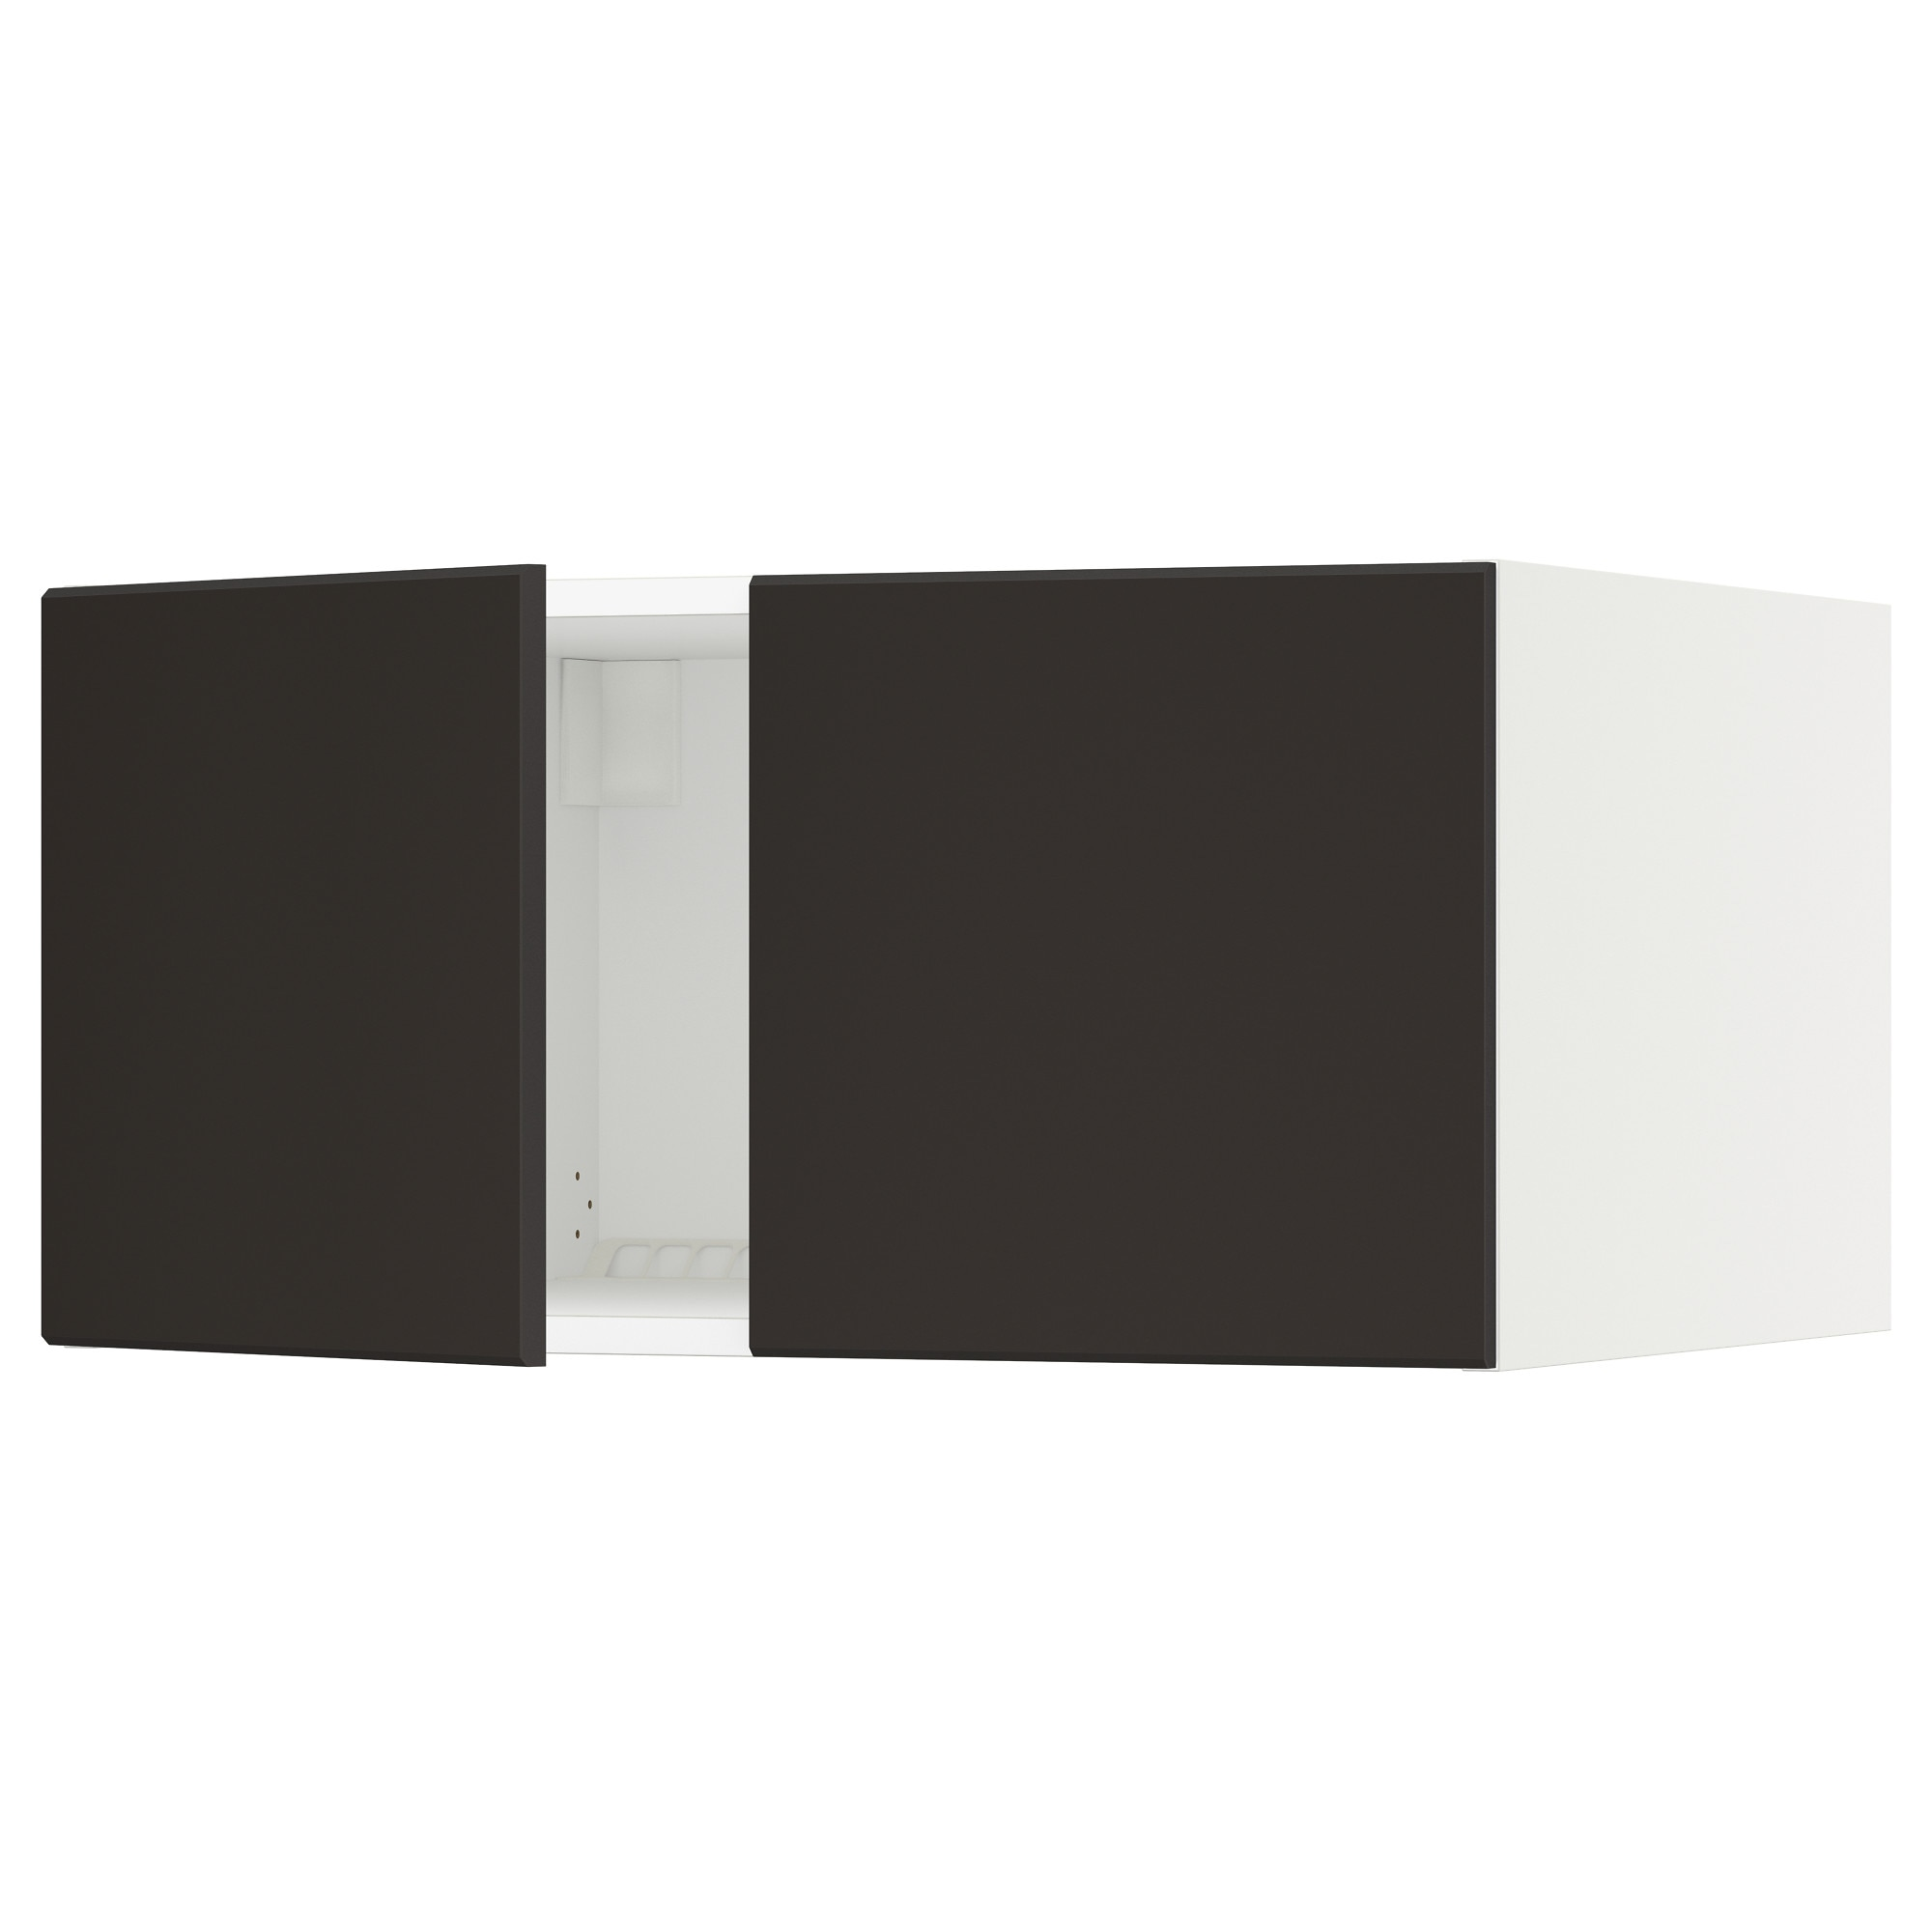 Color birch effect black brown high gloss gray turquoise white white - Sektion Top Cabinet For Fridge W 2 Doors Wood Effect Brown Laxarby Black Brown 36x24x15 Ikea